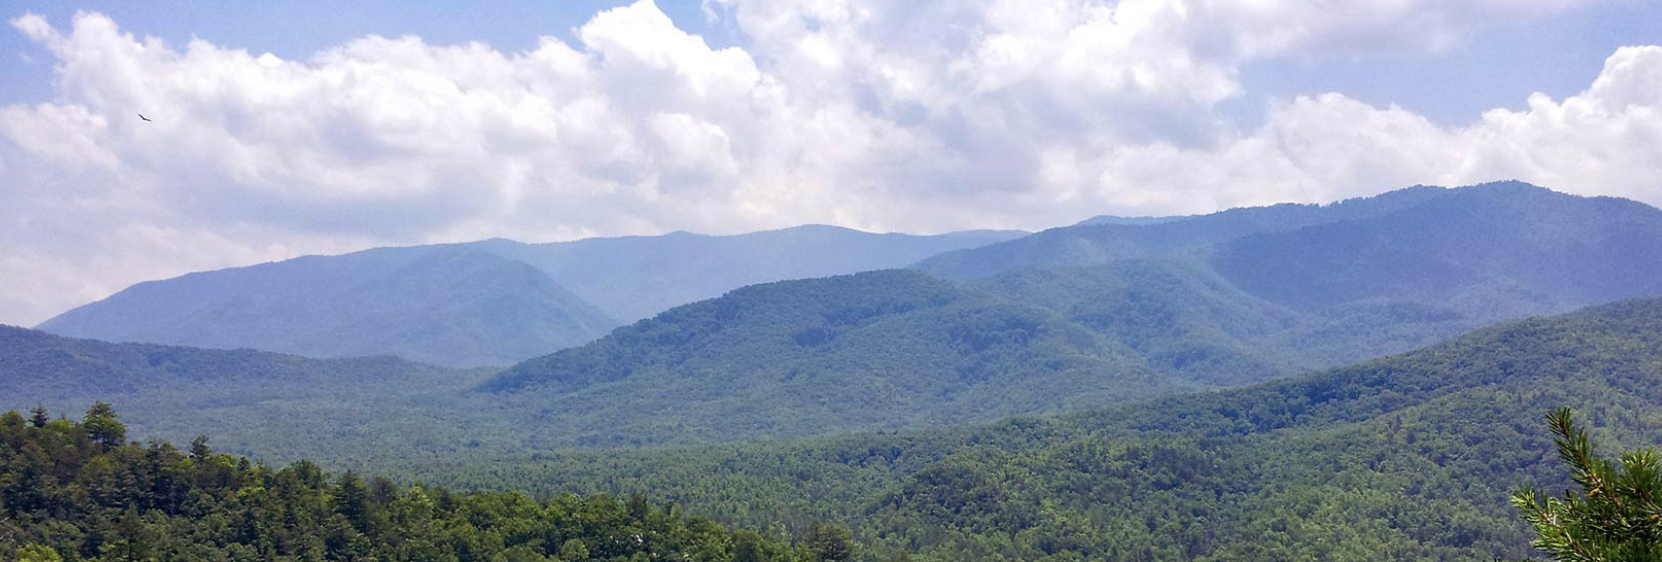 Tennessee smoky mountains real estate